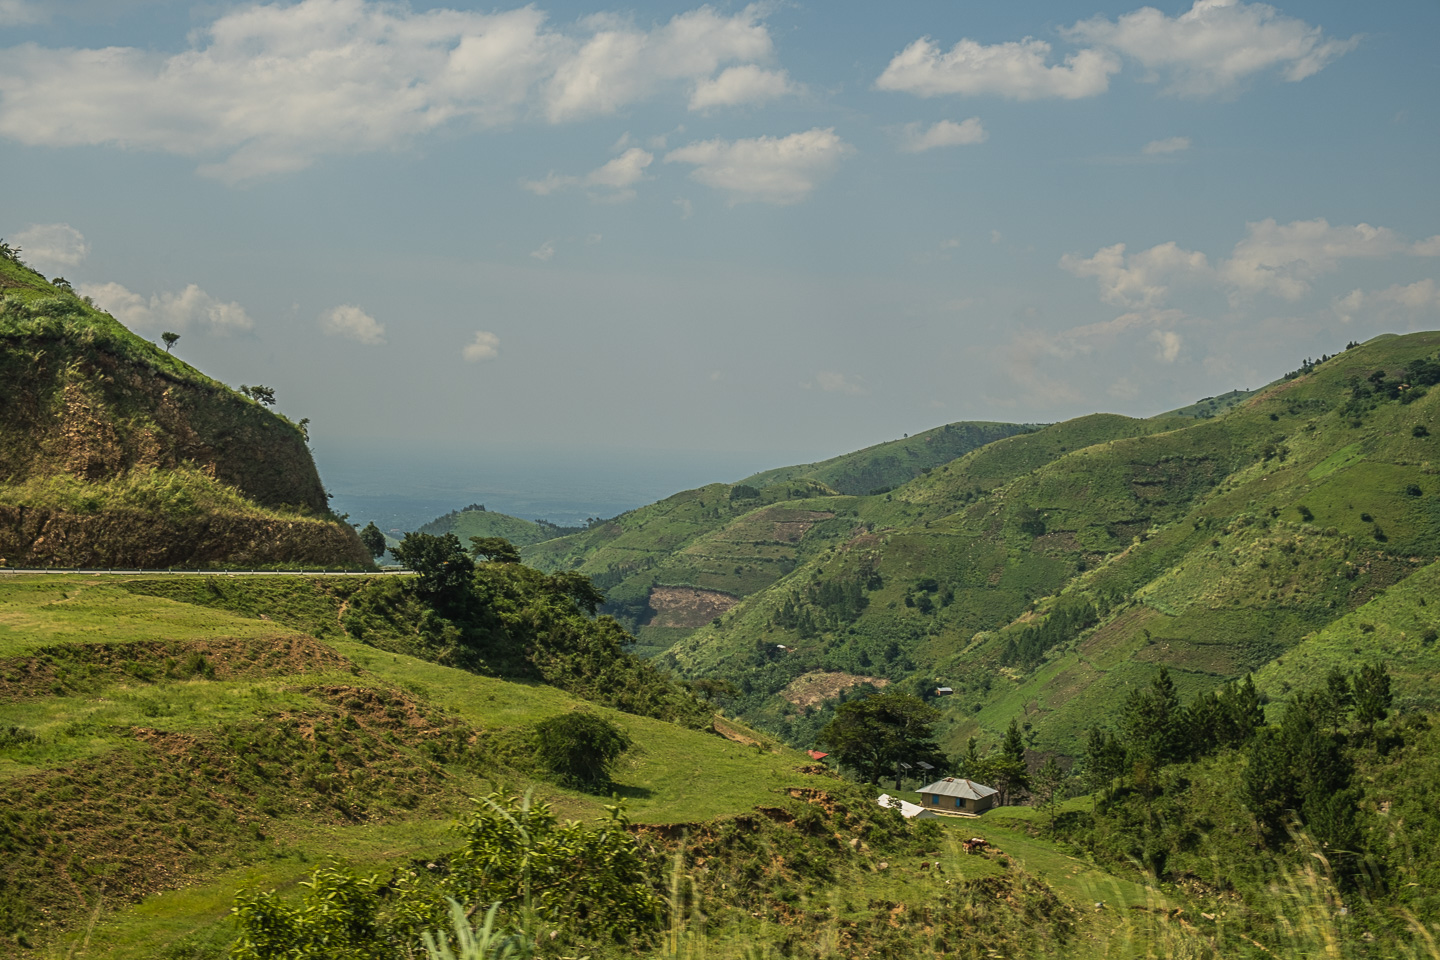 View of the Western Rift Valley near Fort Portal, Uganda